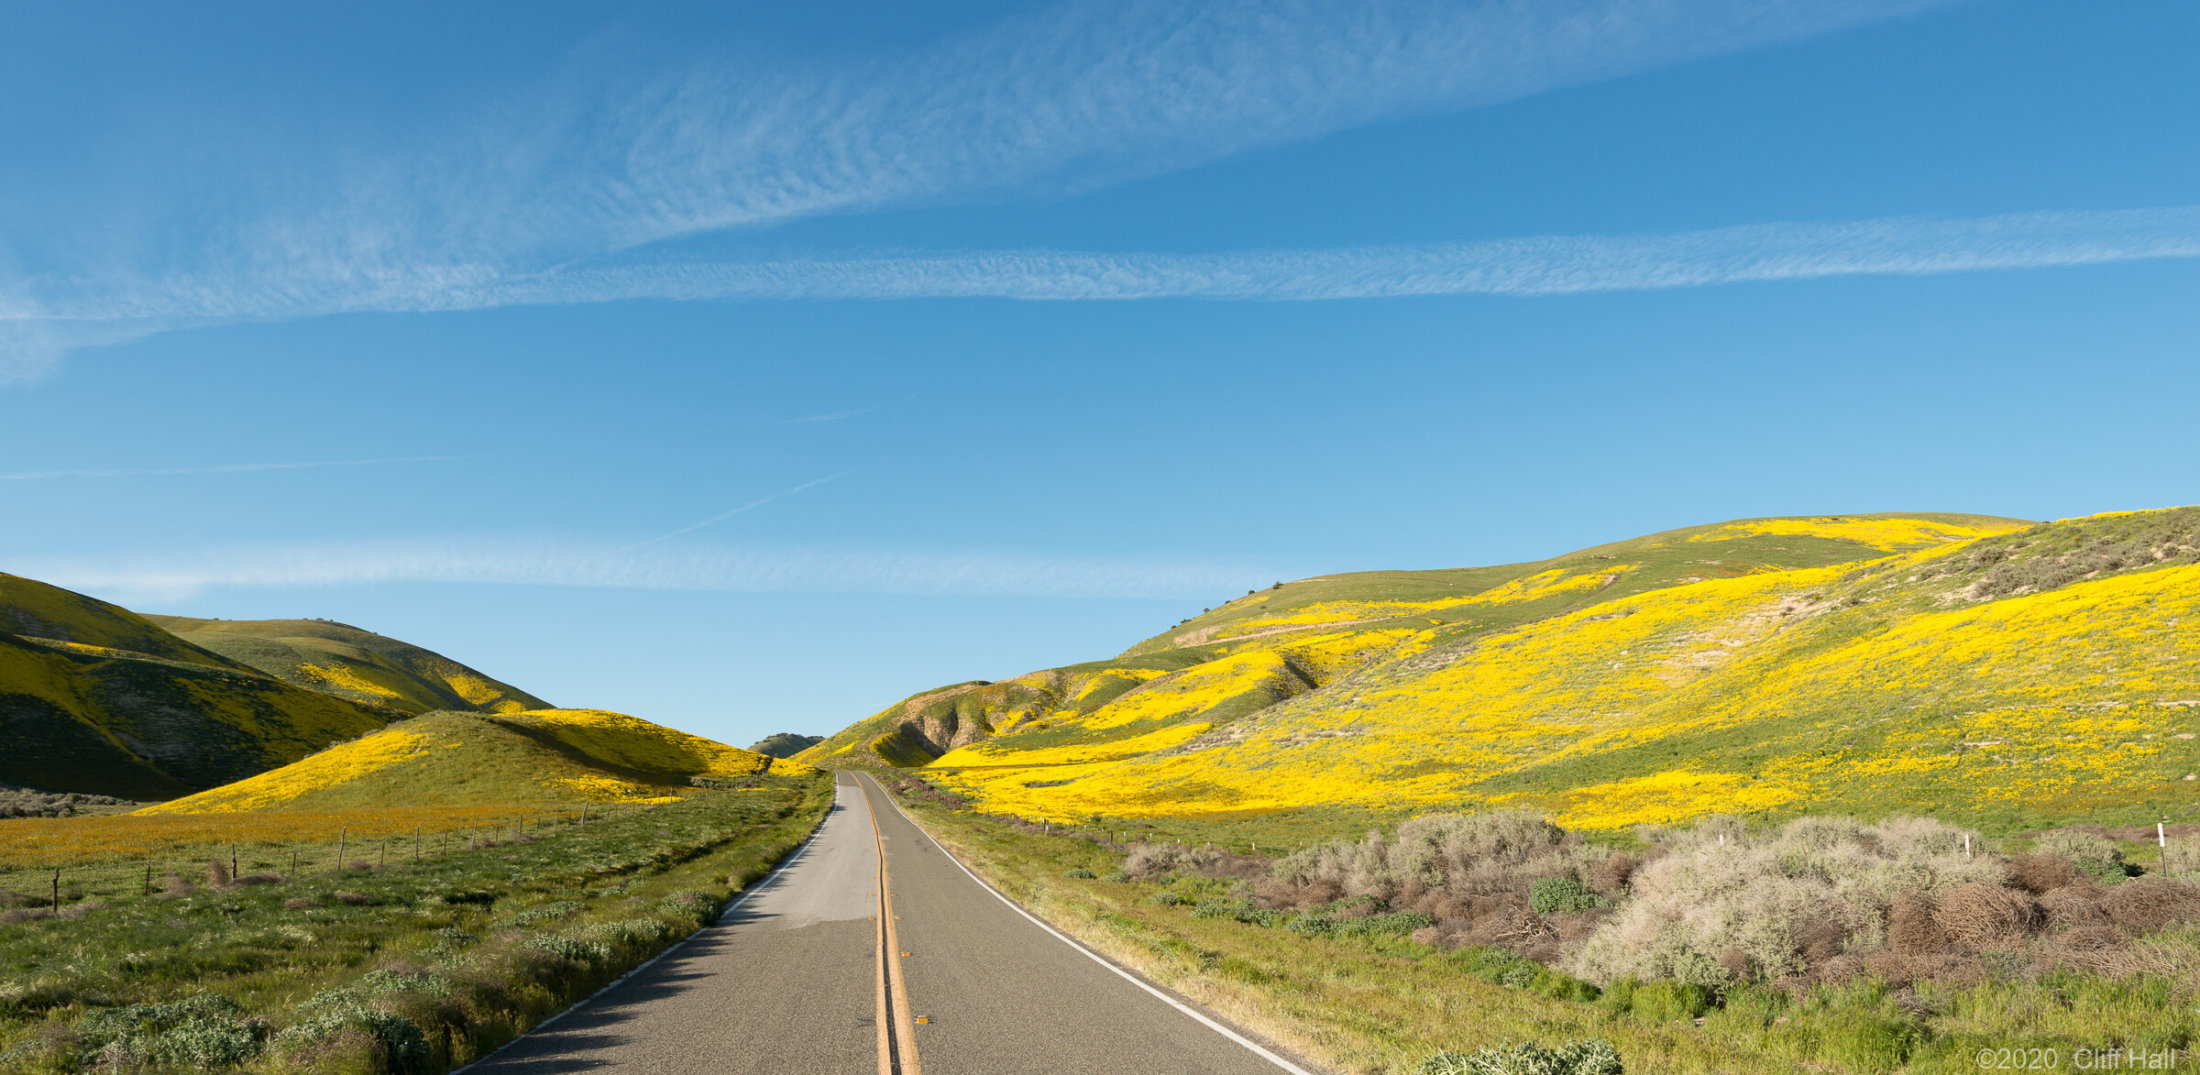 The Yellow Flower Road